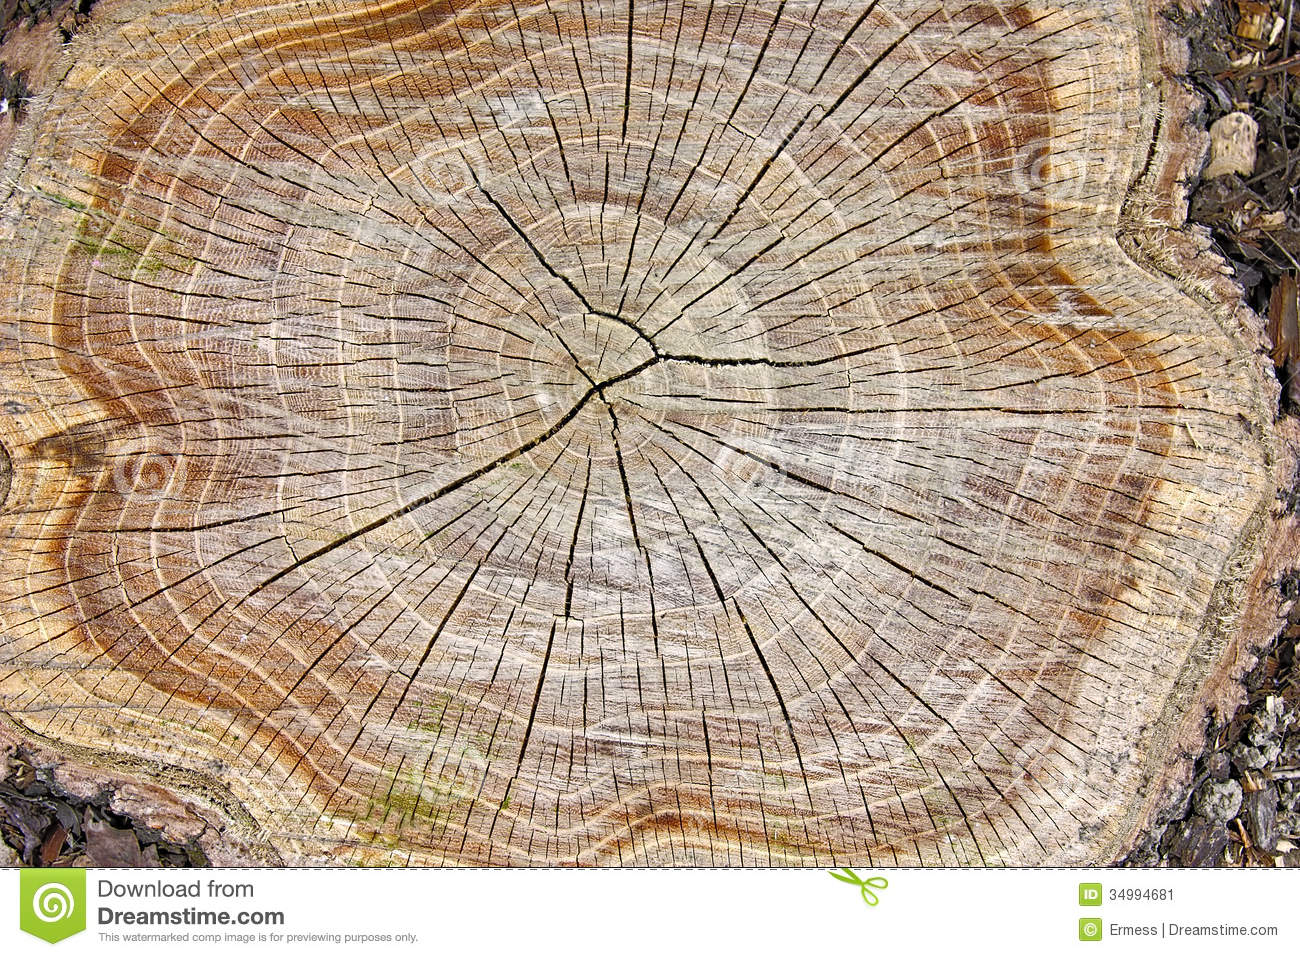 Stump of tree felled - section of the trunk with annual rings.